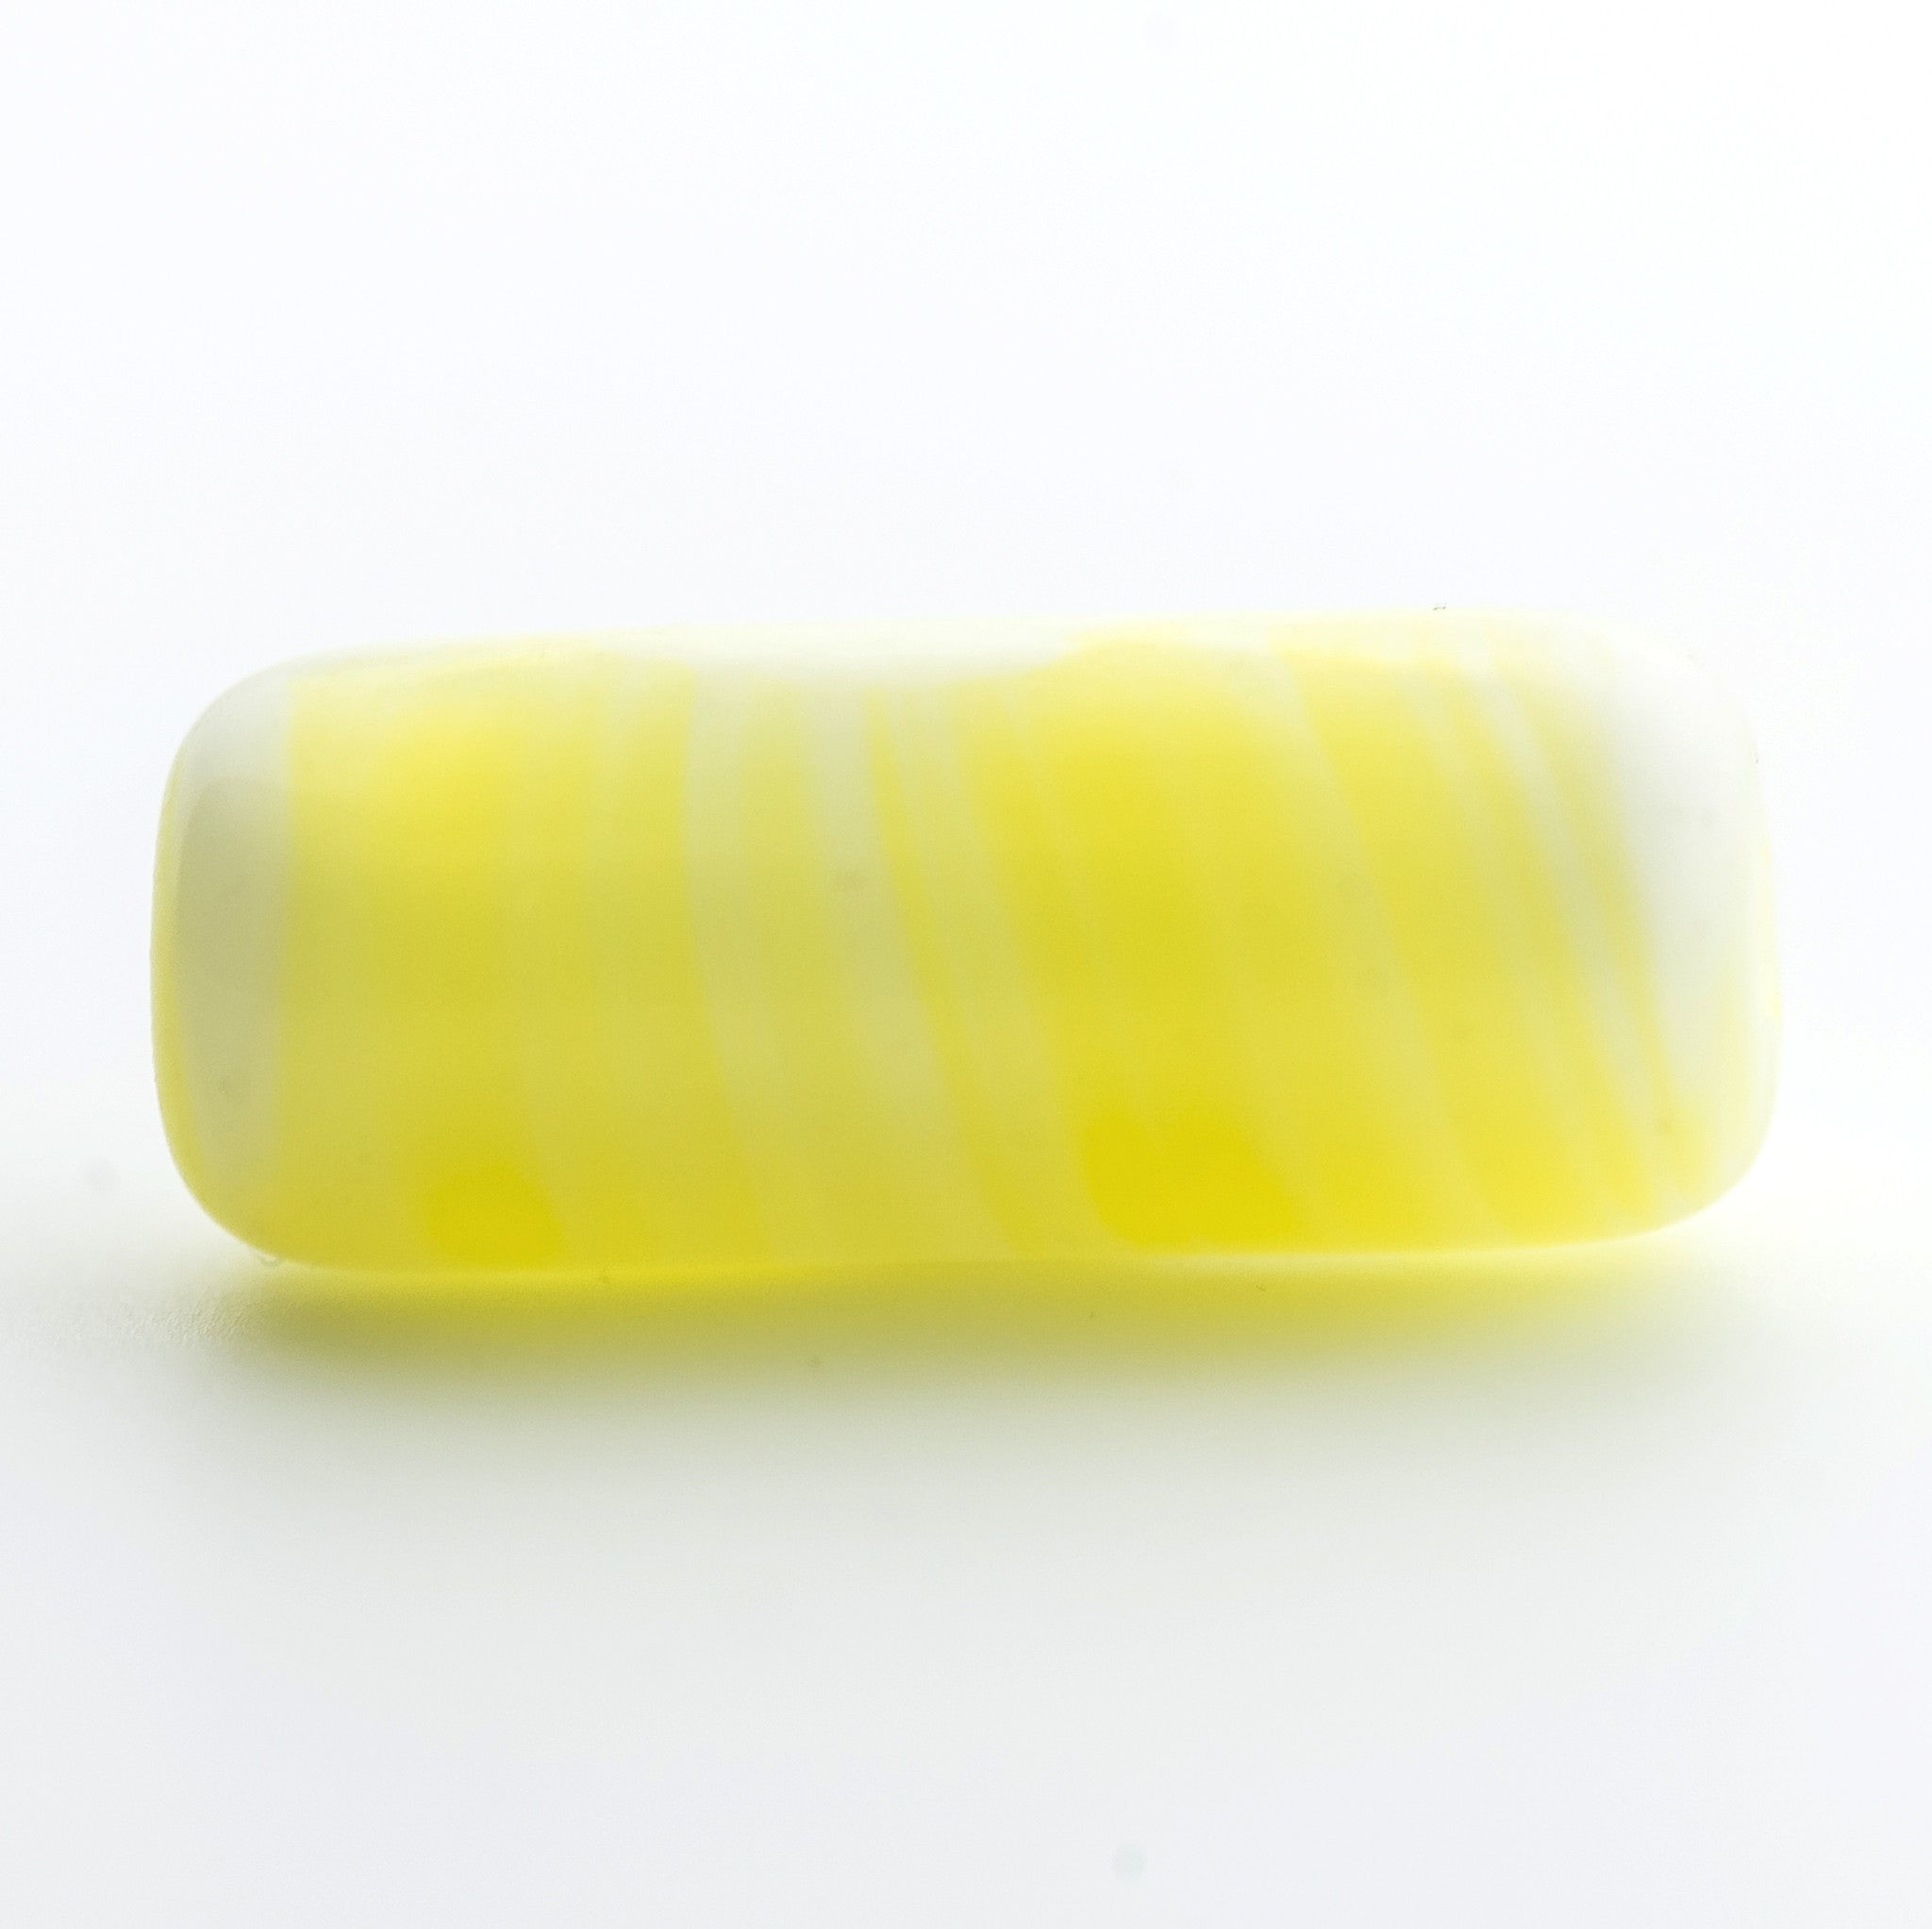 15X6MM Yellow Glass Tube Bead (72 pieces)